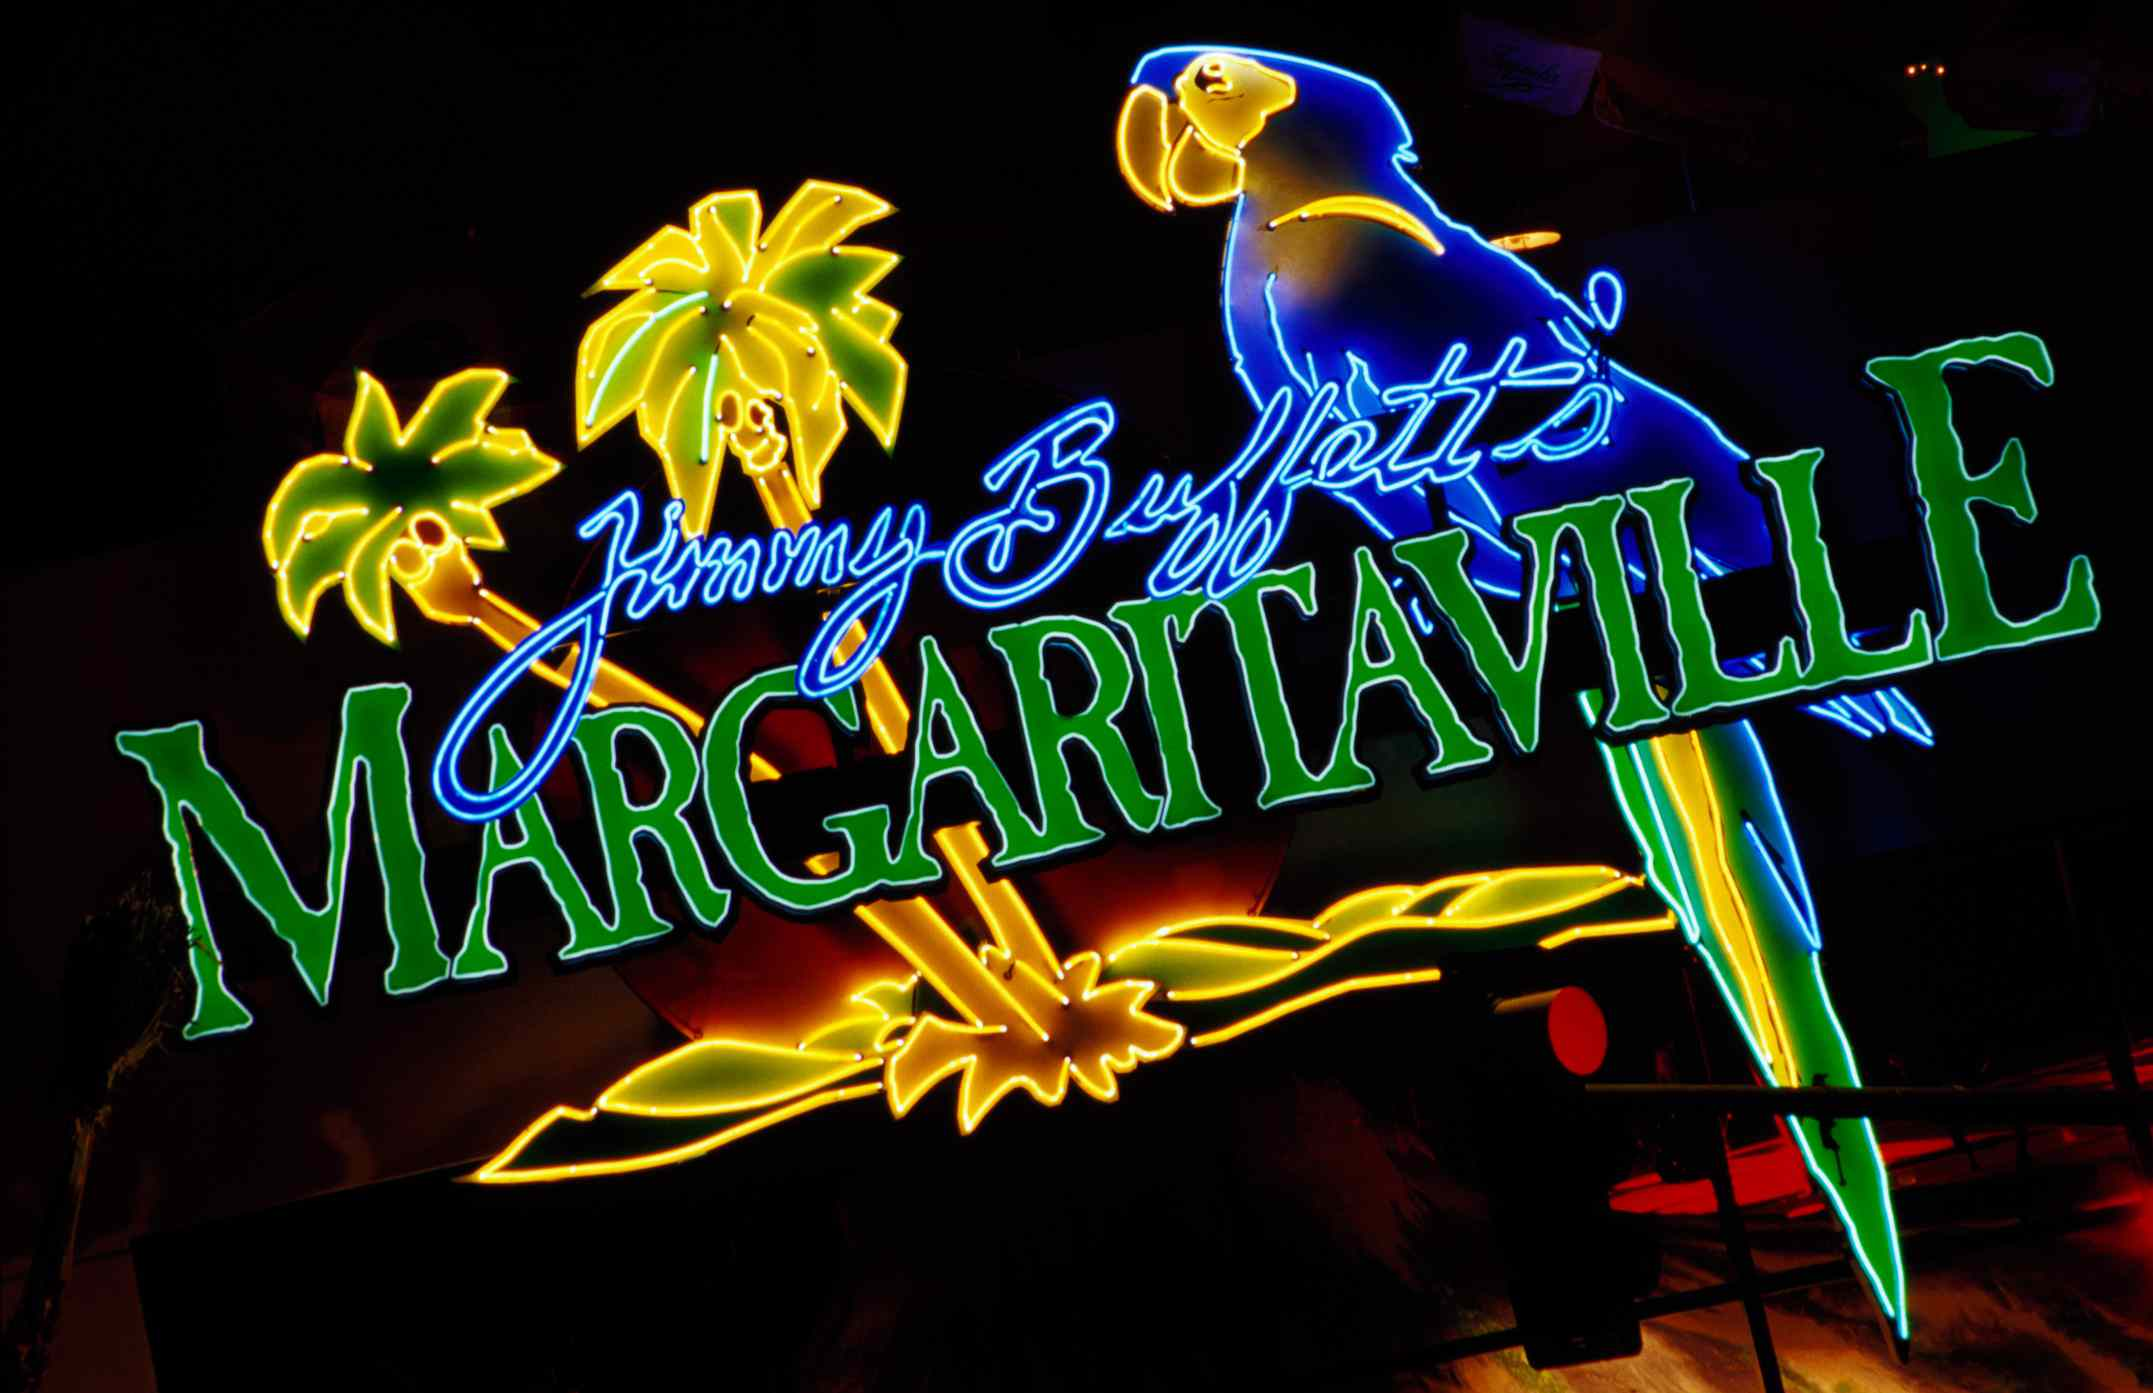 Margaritaville bar sign